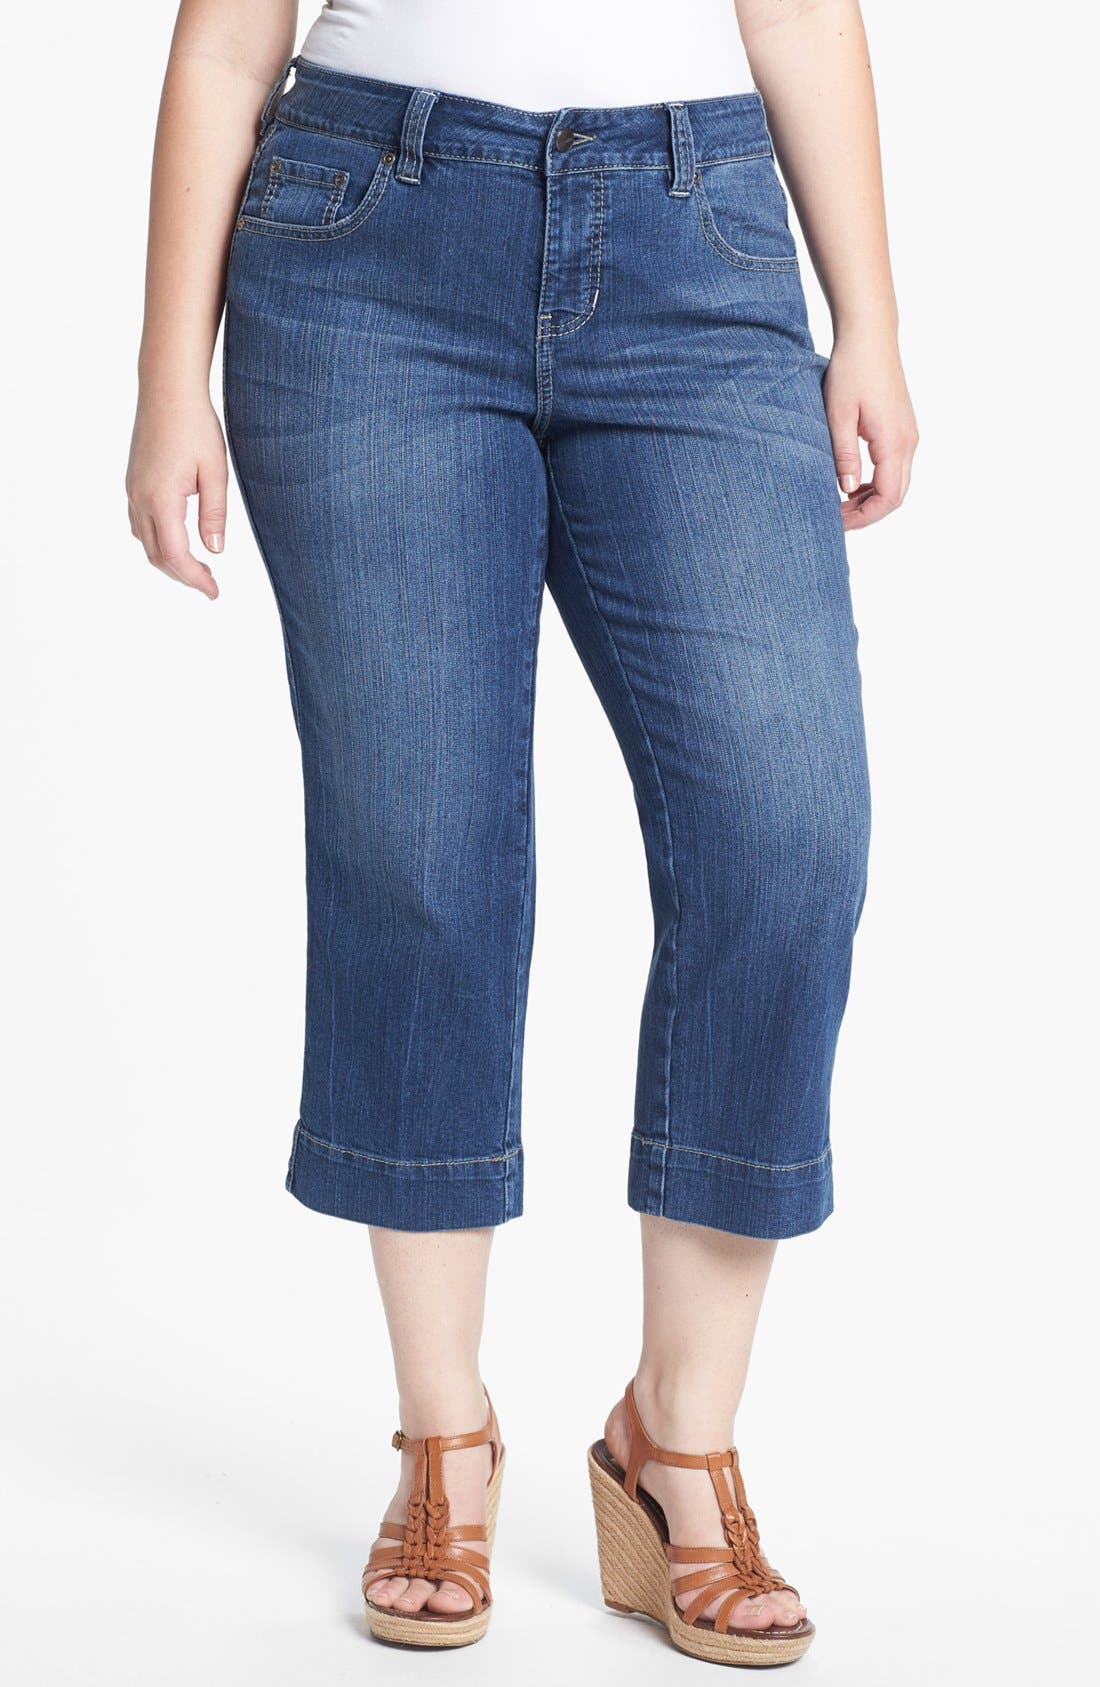 Alternate Image 1 Selected - Jag Jeans 'Canyon' Crop Jeans (Plus Size)